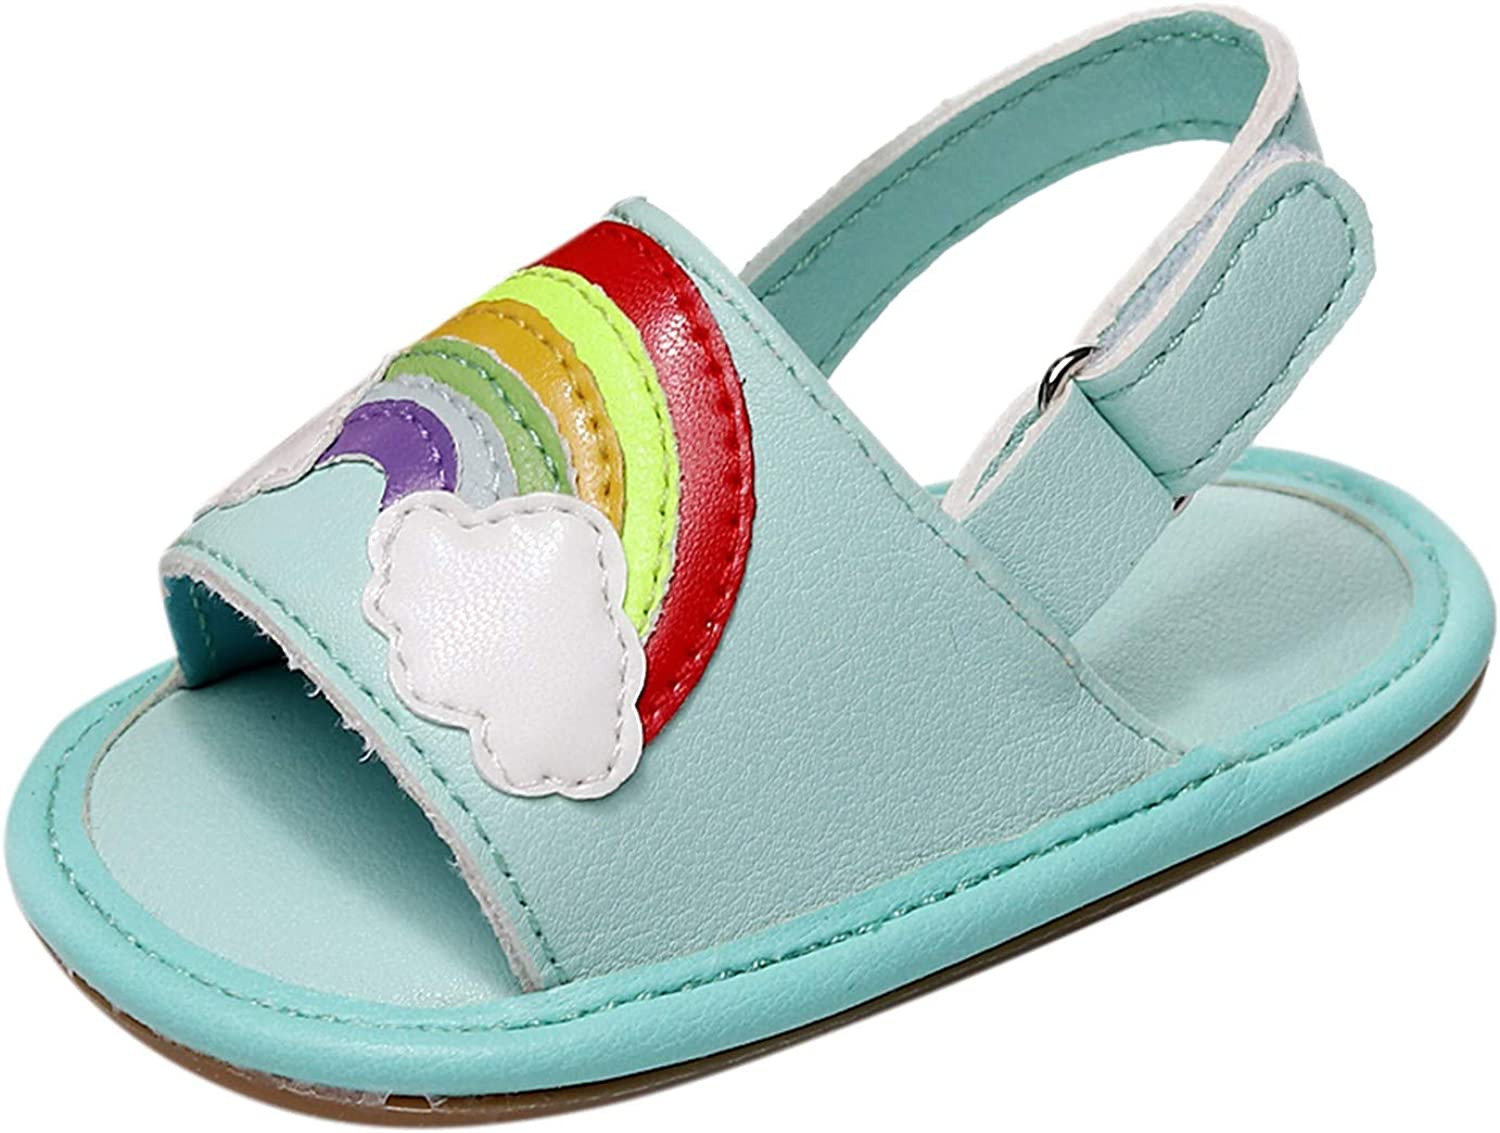 Infant Baby Girls Cartoons Cute Velcro Sandals Soft Surprise price Sol Max 42% OFF Non-slip